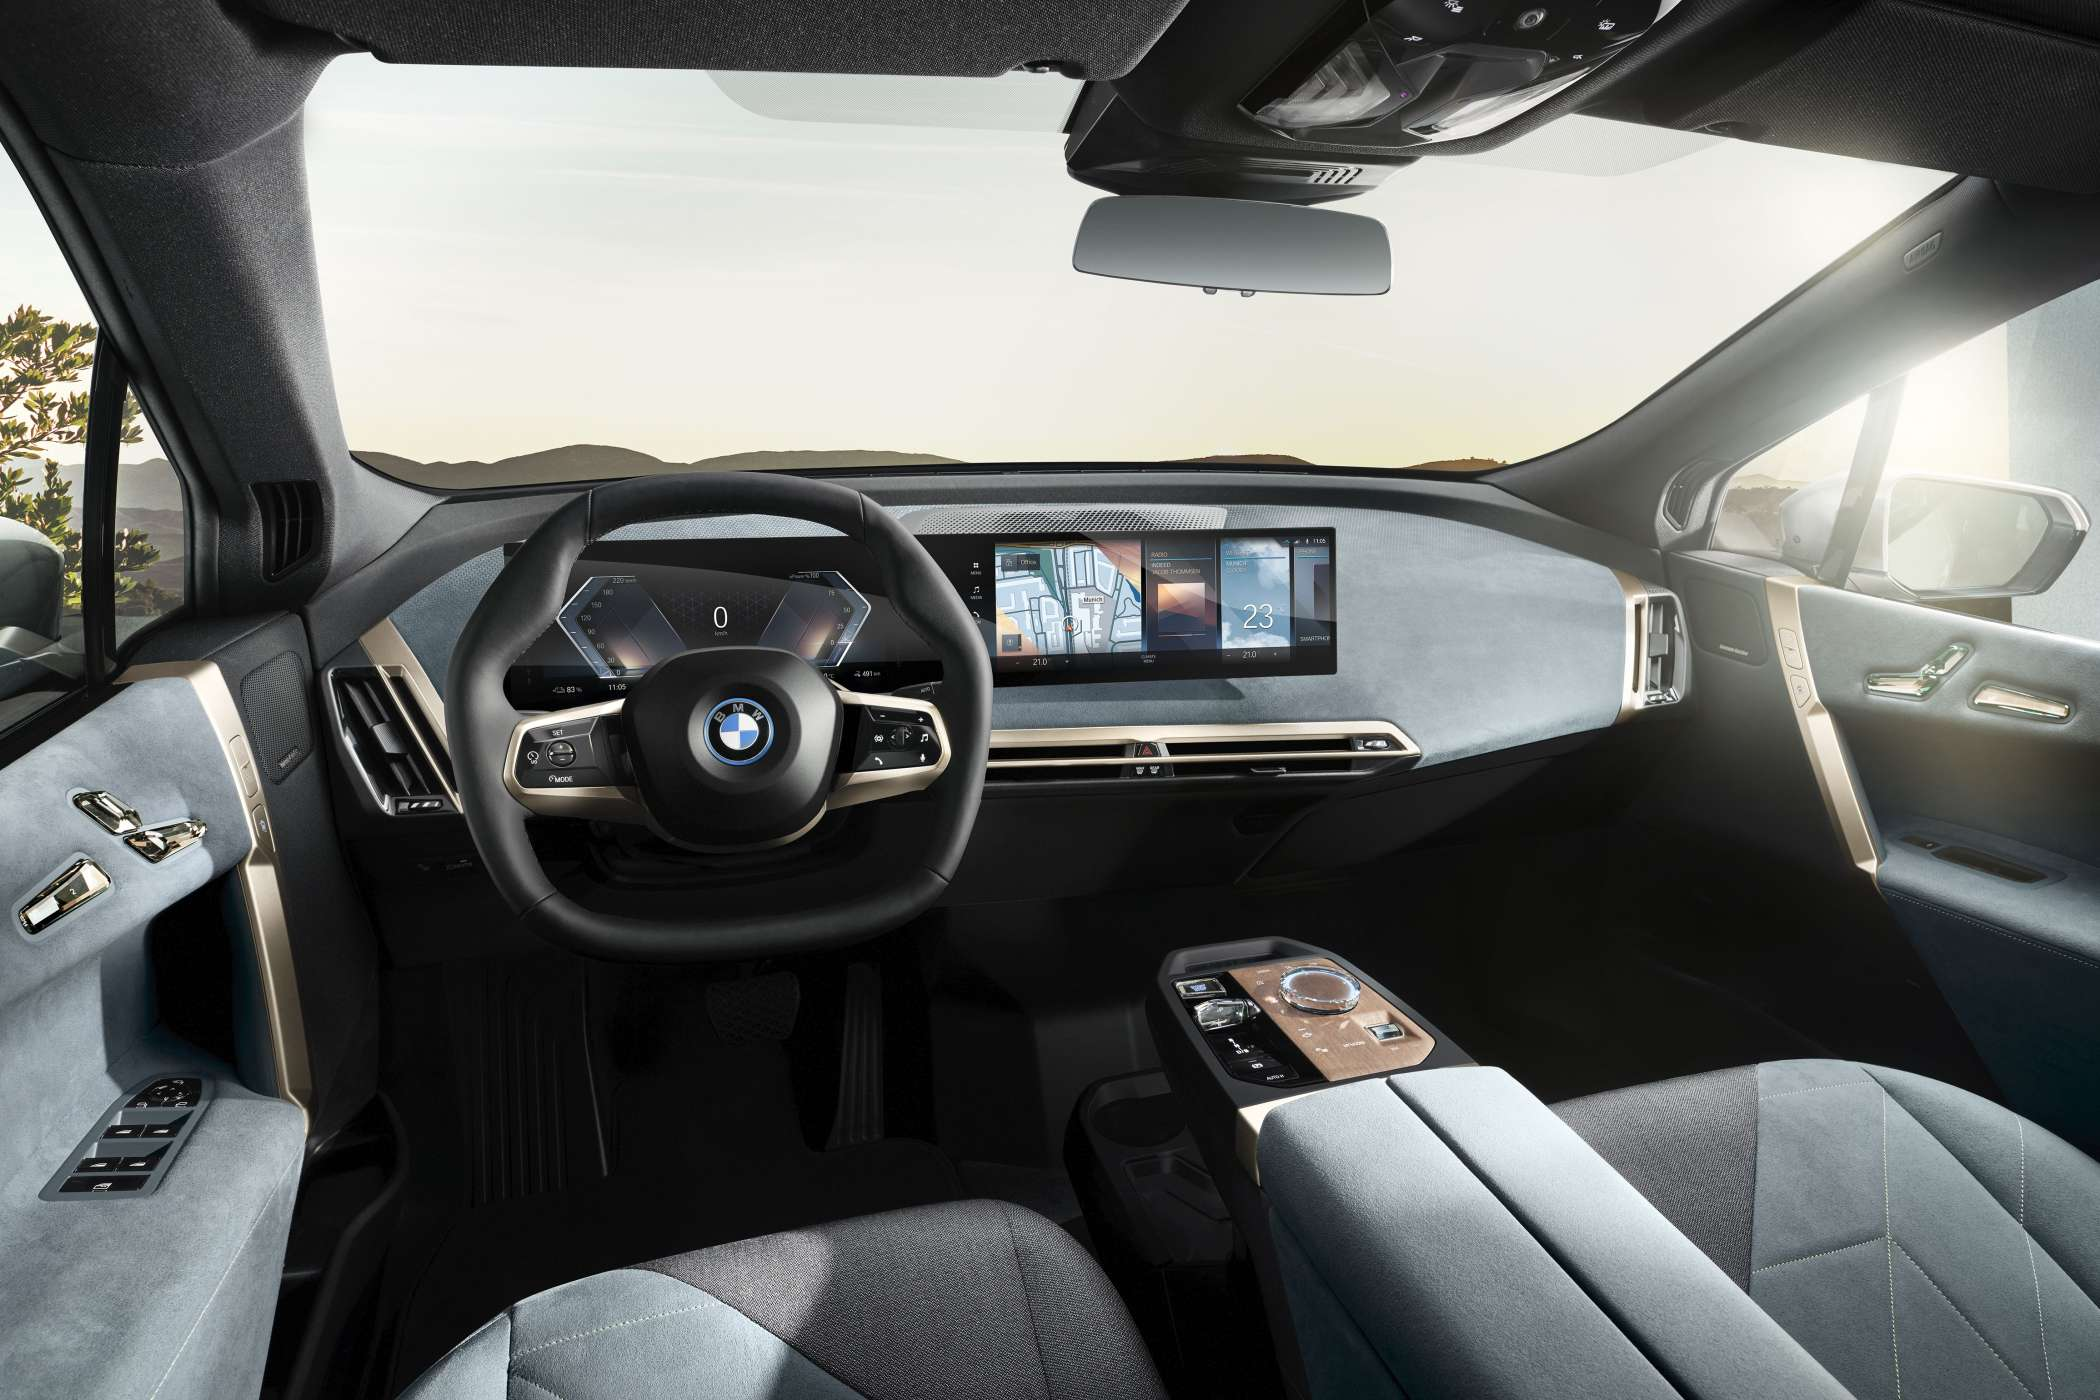 Revolution: Das flauschige Interieur. | Foto. BMW